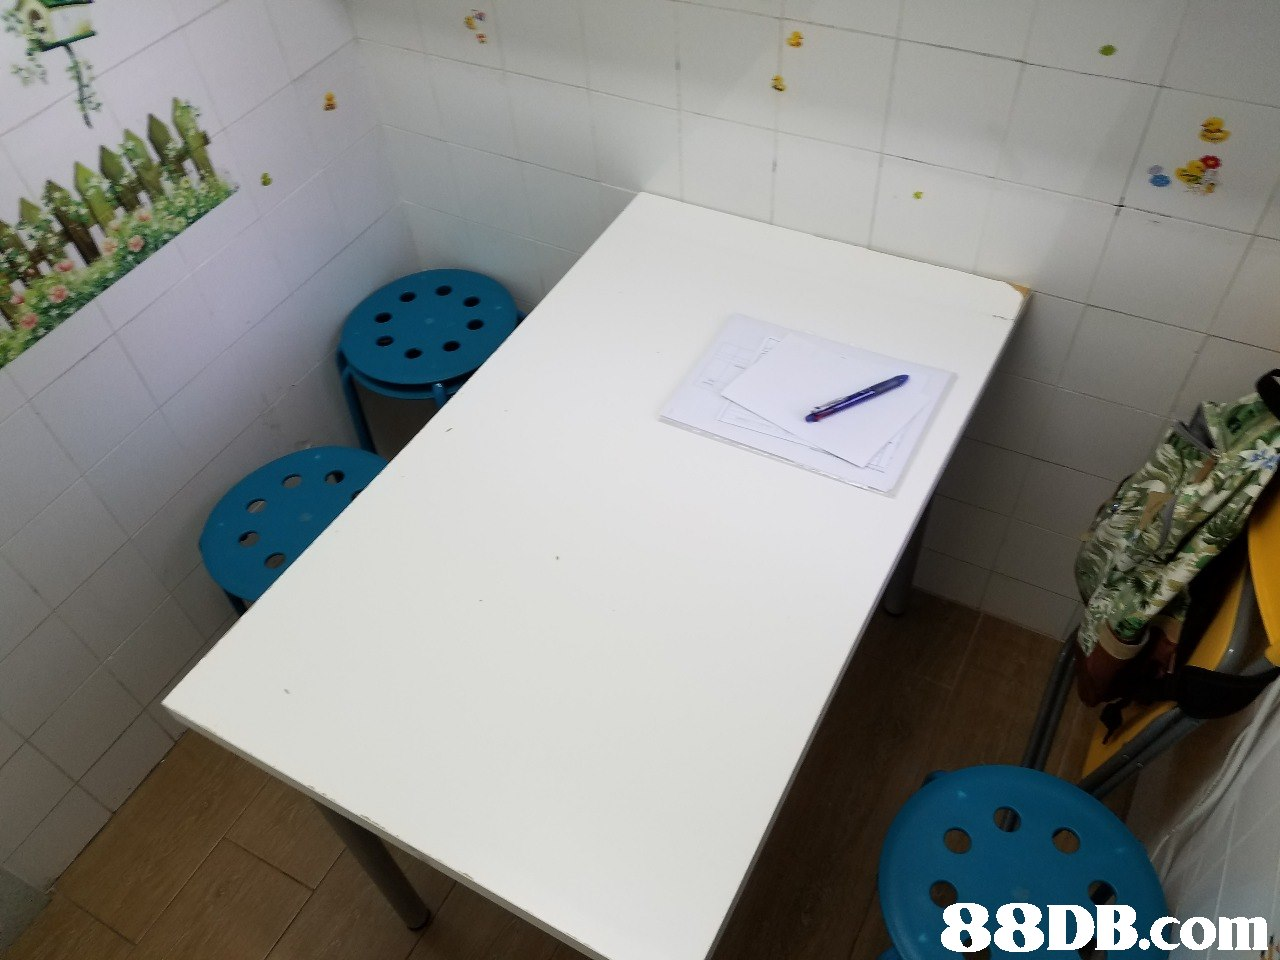 product,table,furniture,